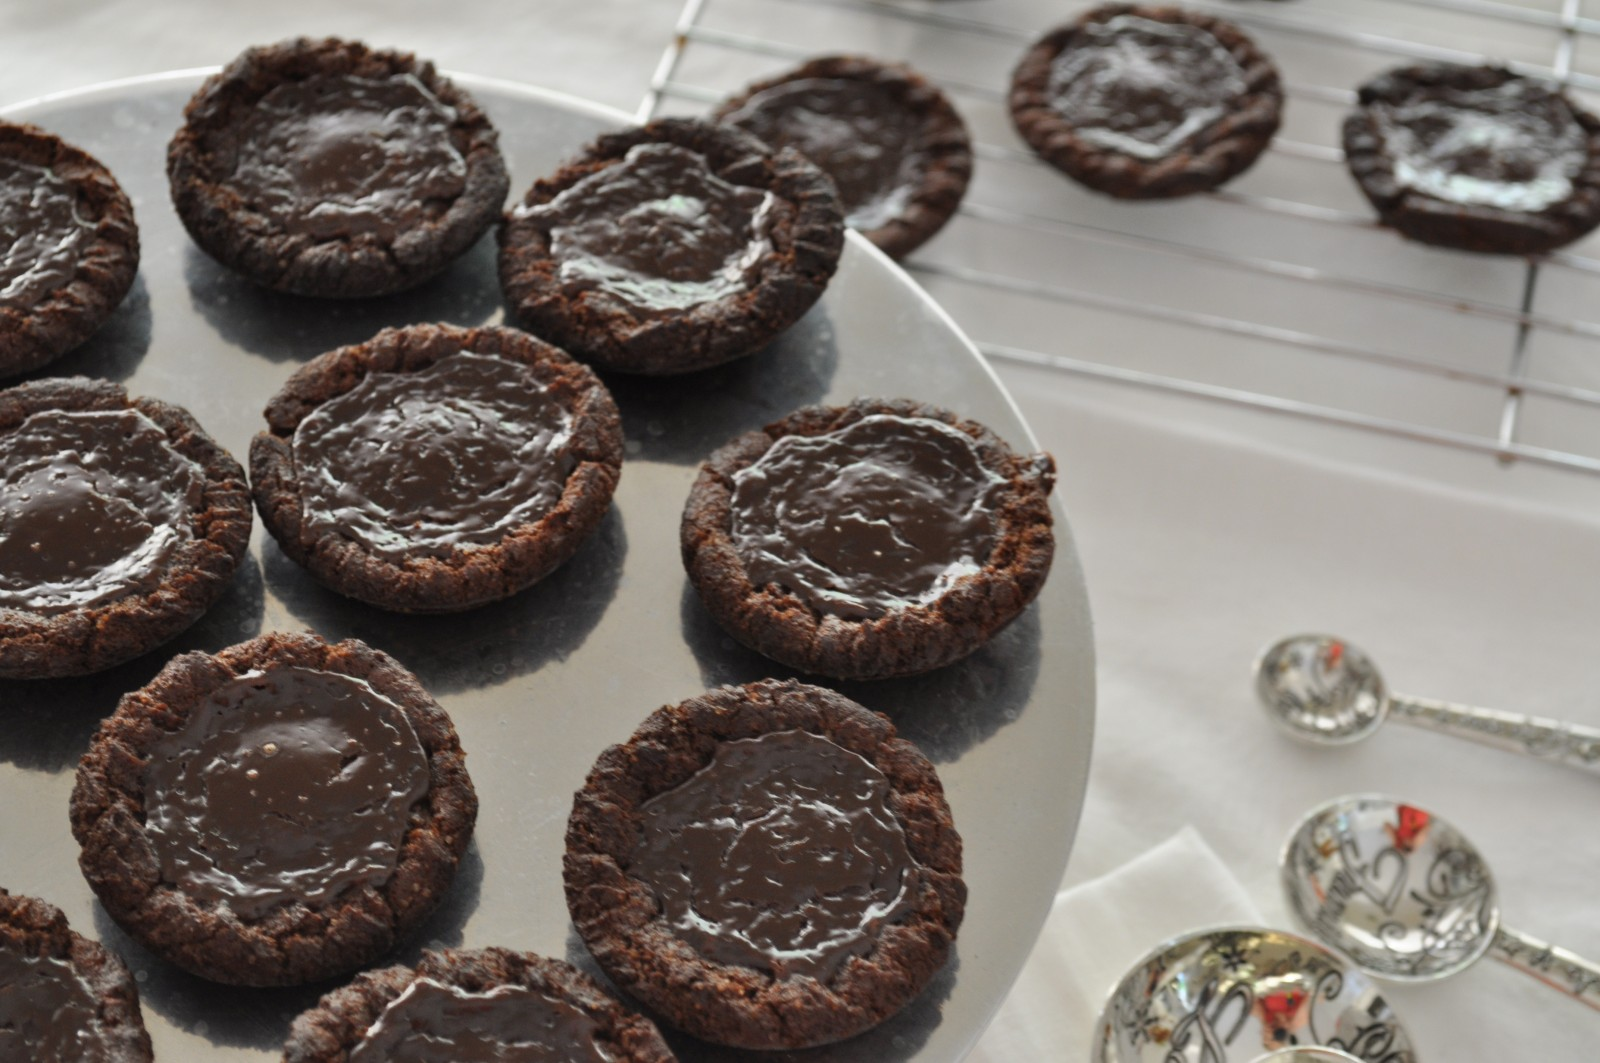 Salted caramel chocolate tarts – death by chocolate sweet adventures blog hop